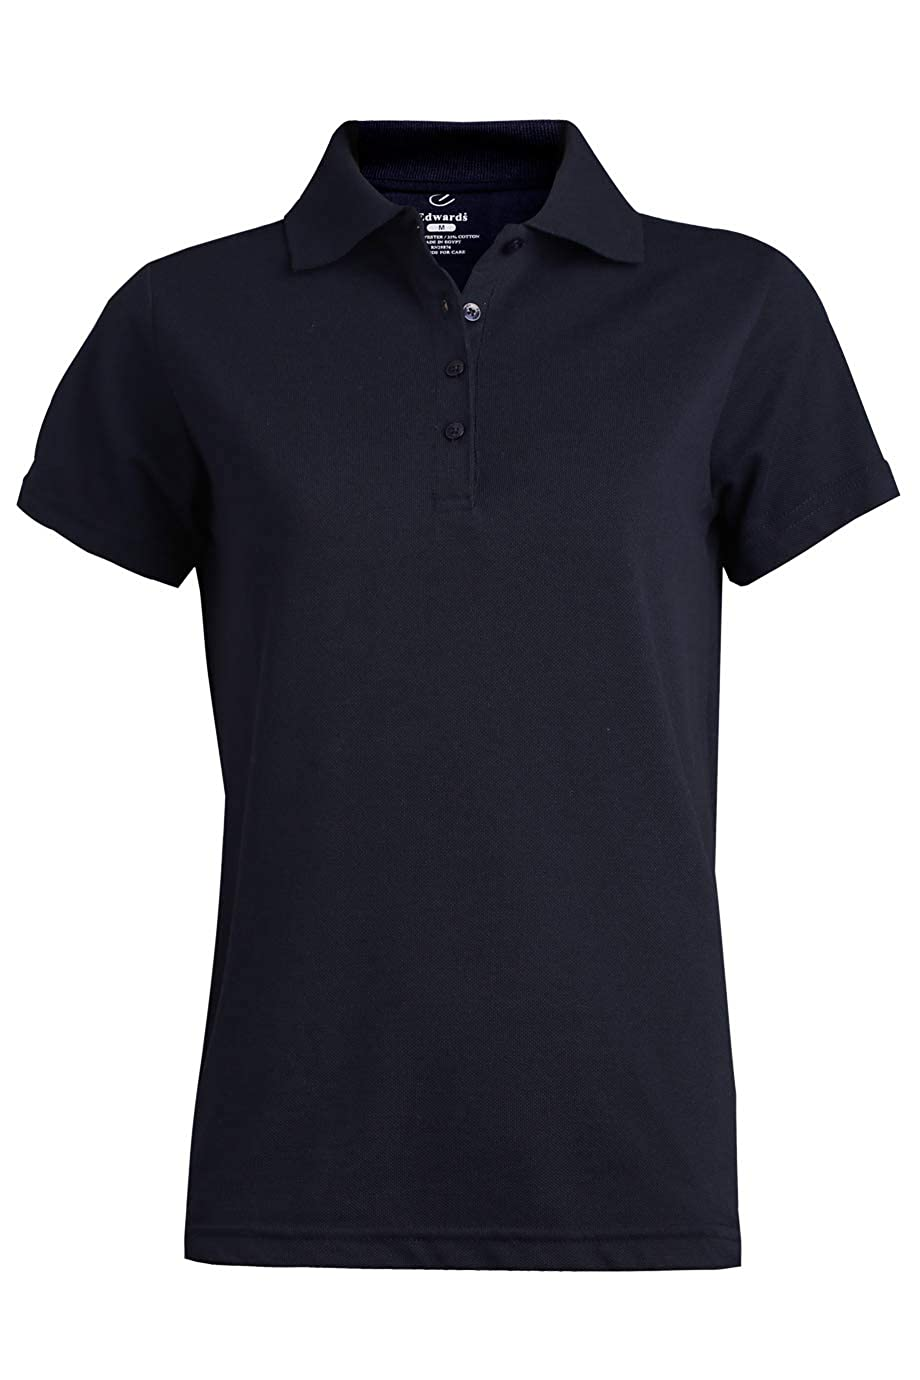 Edwards Ladies Blended Pique Short Sleeve Polo